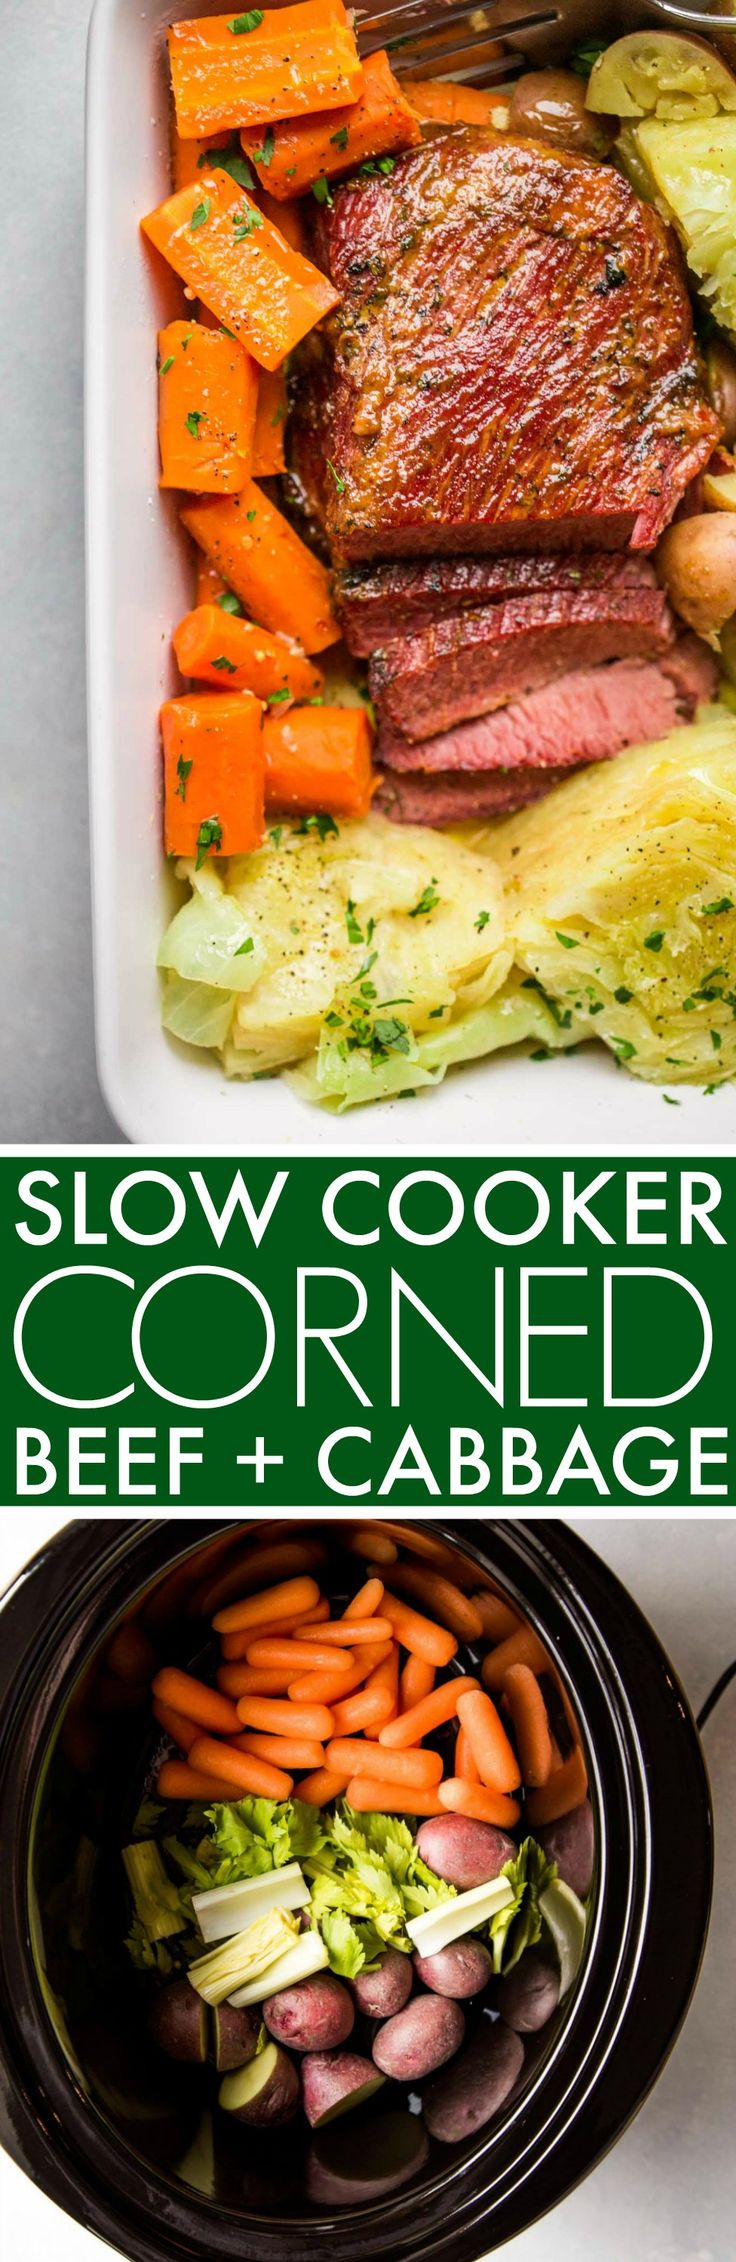 Slow Cooker Corned Beef & Cabbage is made in the crock pot and finished off under the broiler with a brown sugar-mustard glaze, giving it a nice crispy crust. #cornedbeef #slowcooker #crockpot #crockpotcornedbeef #slowcookercornedbeef #stpatricksdayrecipe #irishfood  via @platingspairing